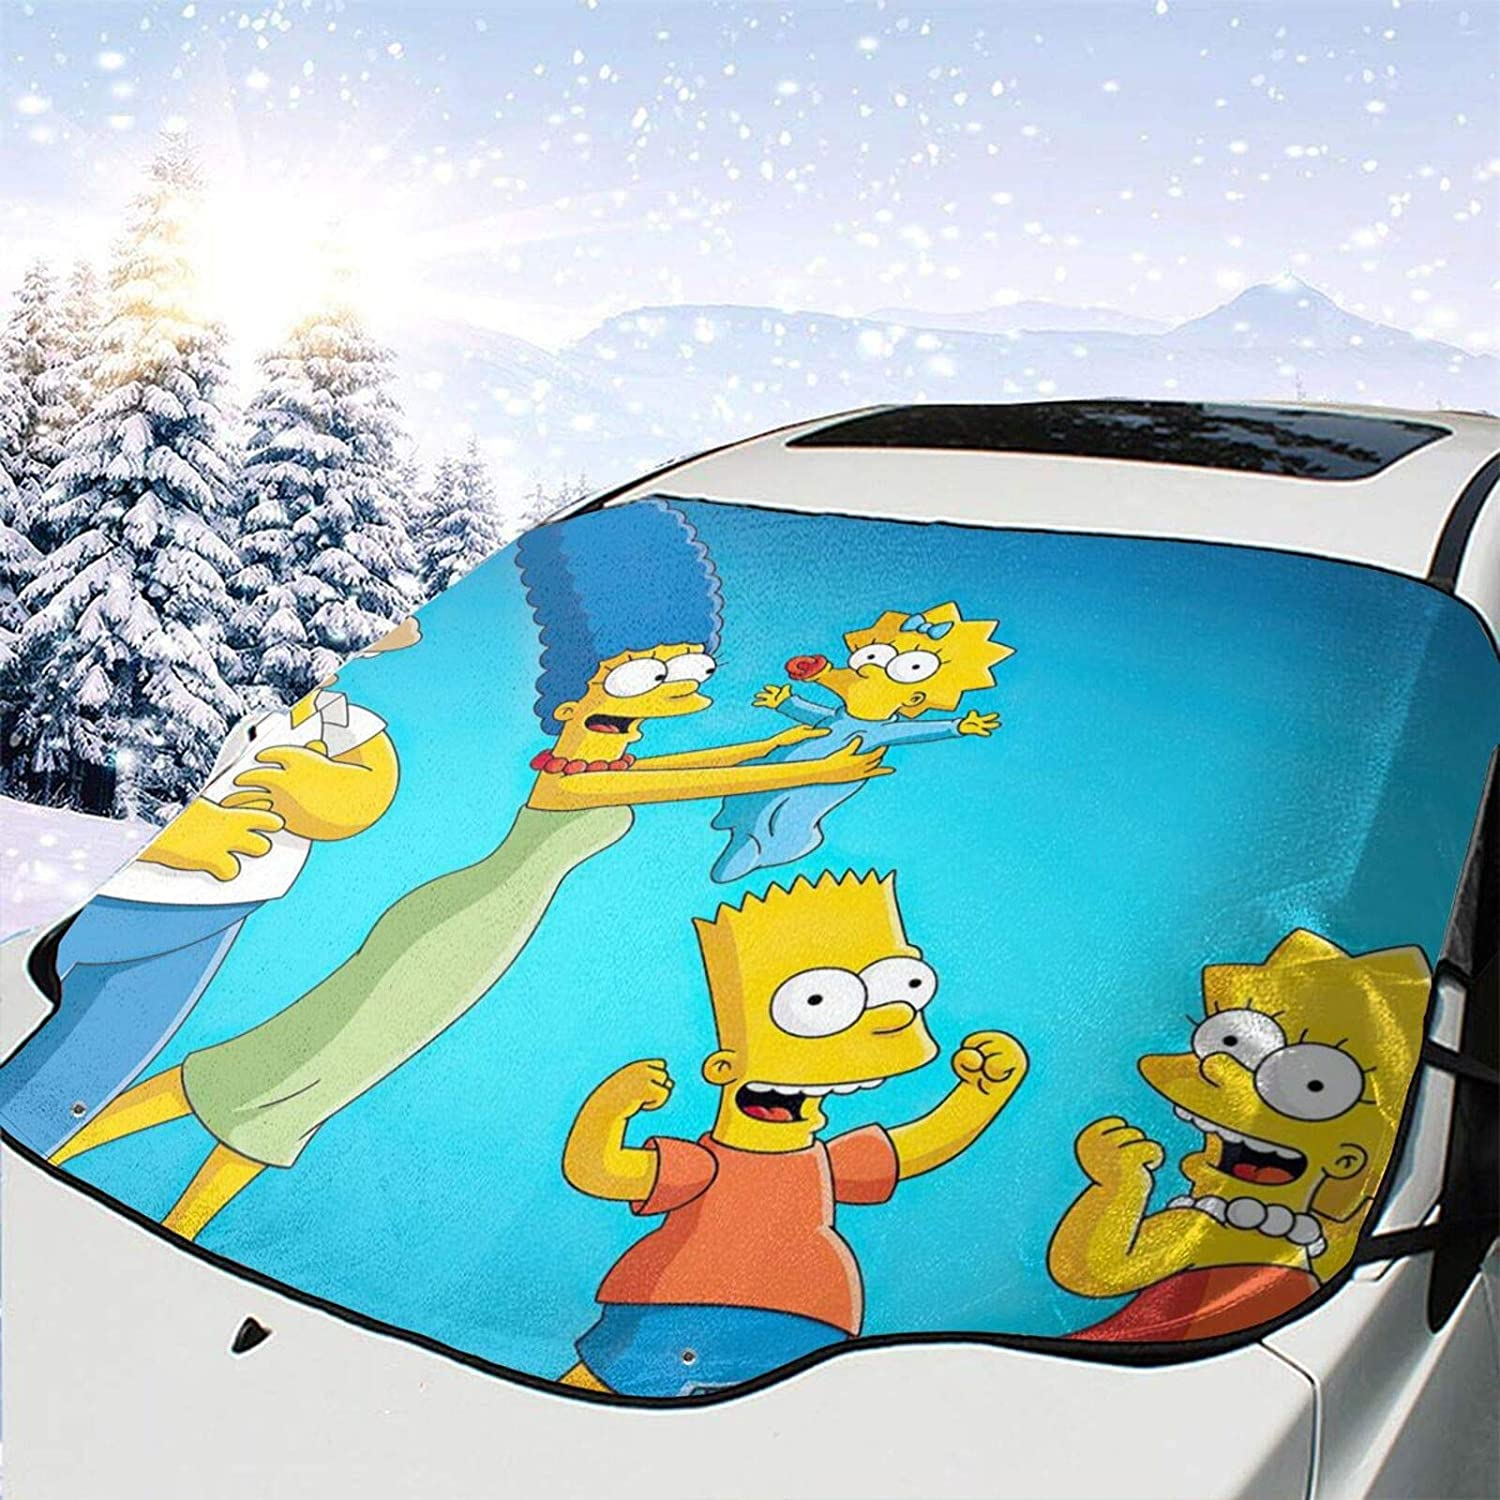 AMYHERFORD The Simsns Windshield Cover 67% OFF of fixed price Tulsa Mall Snow Car Visor